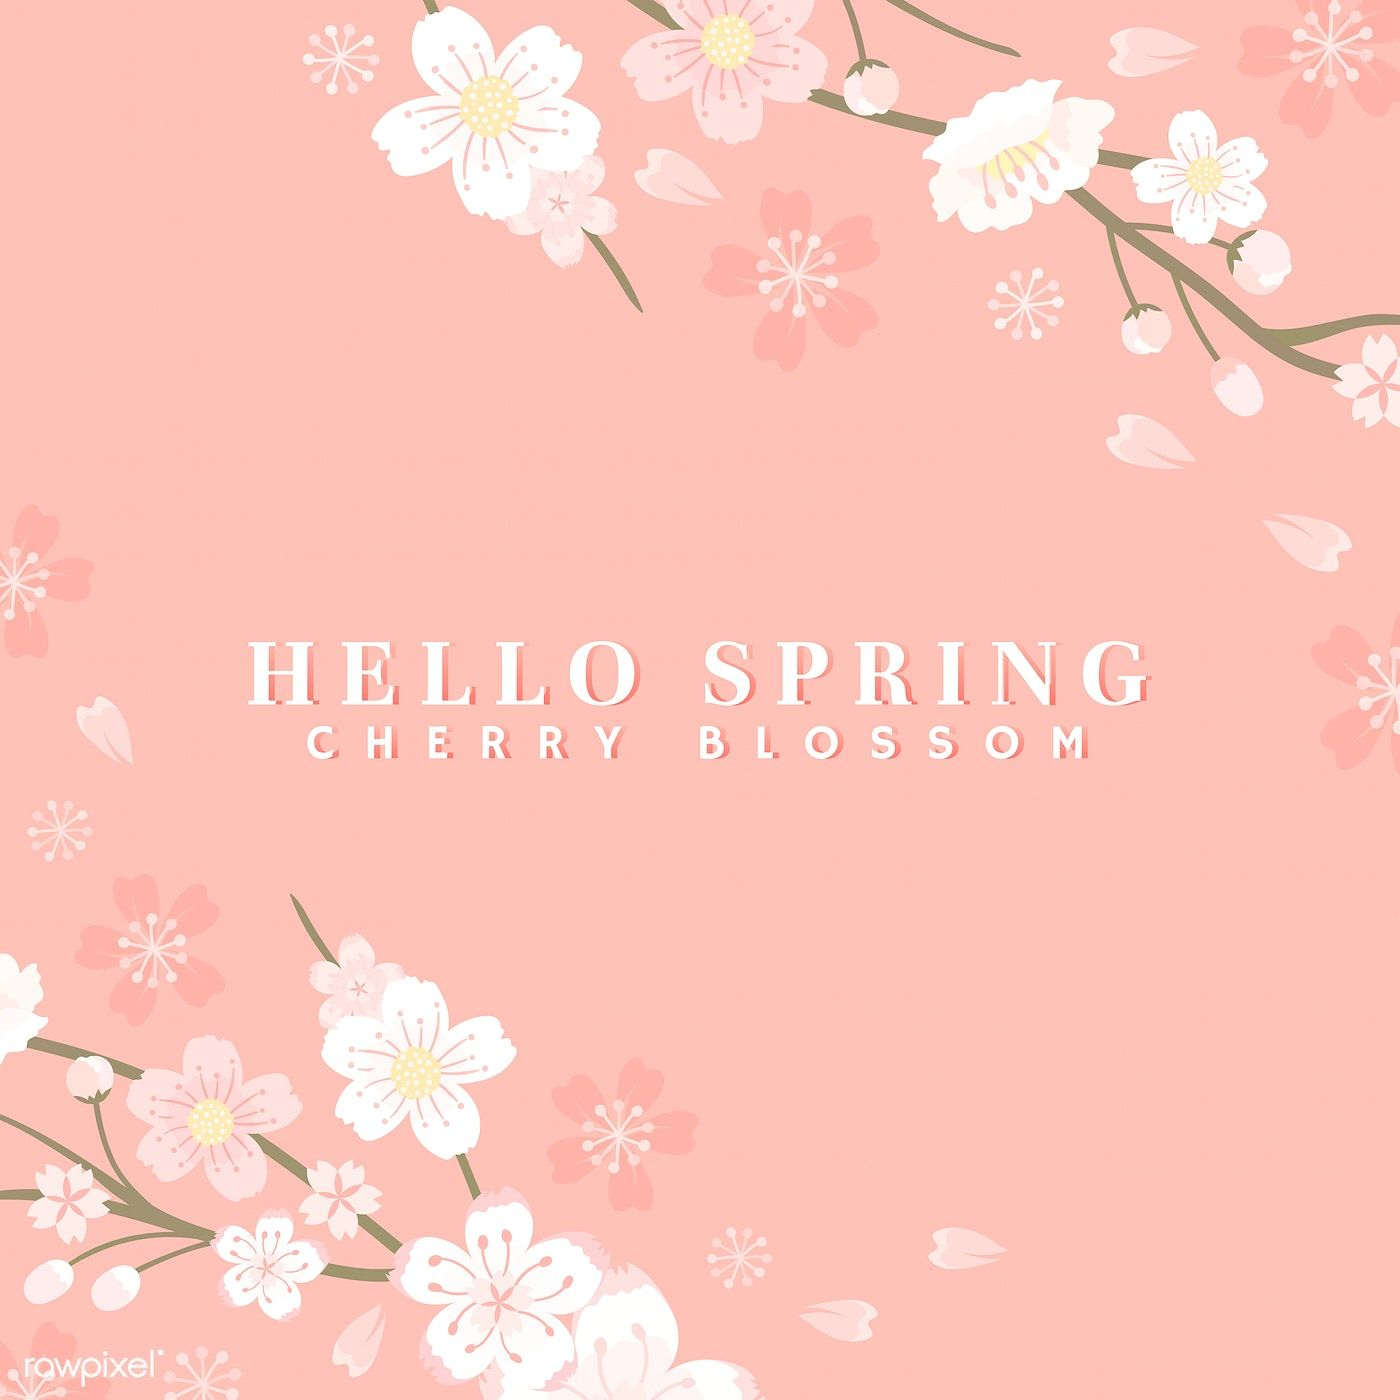 Pink Cherry Blossom Background Vector Free Image By Rawpixel Com Manotang In 2020 Cherry Blossom Background Vector Free Stock Images Free